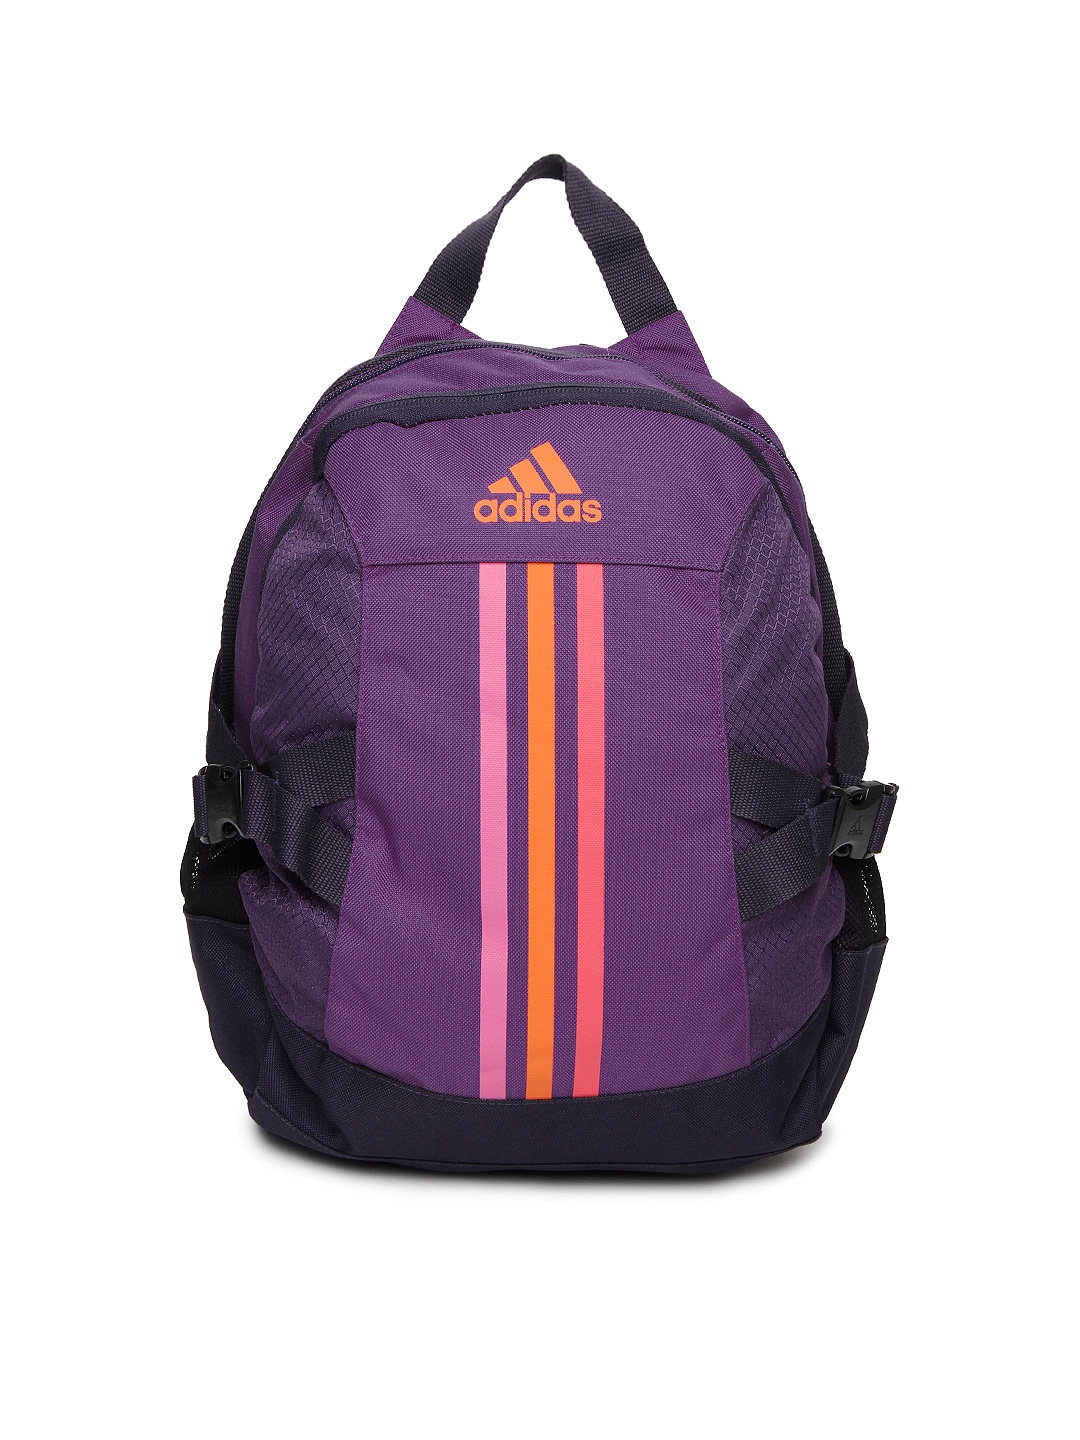 Adidas f49855 Kids Purple Bp Power Ii M Backpack - Best Price in ... ab72bb833197e